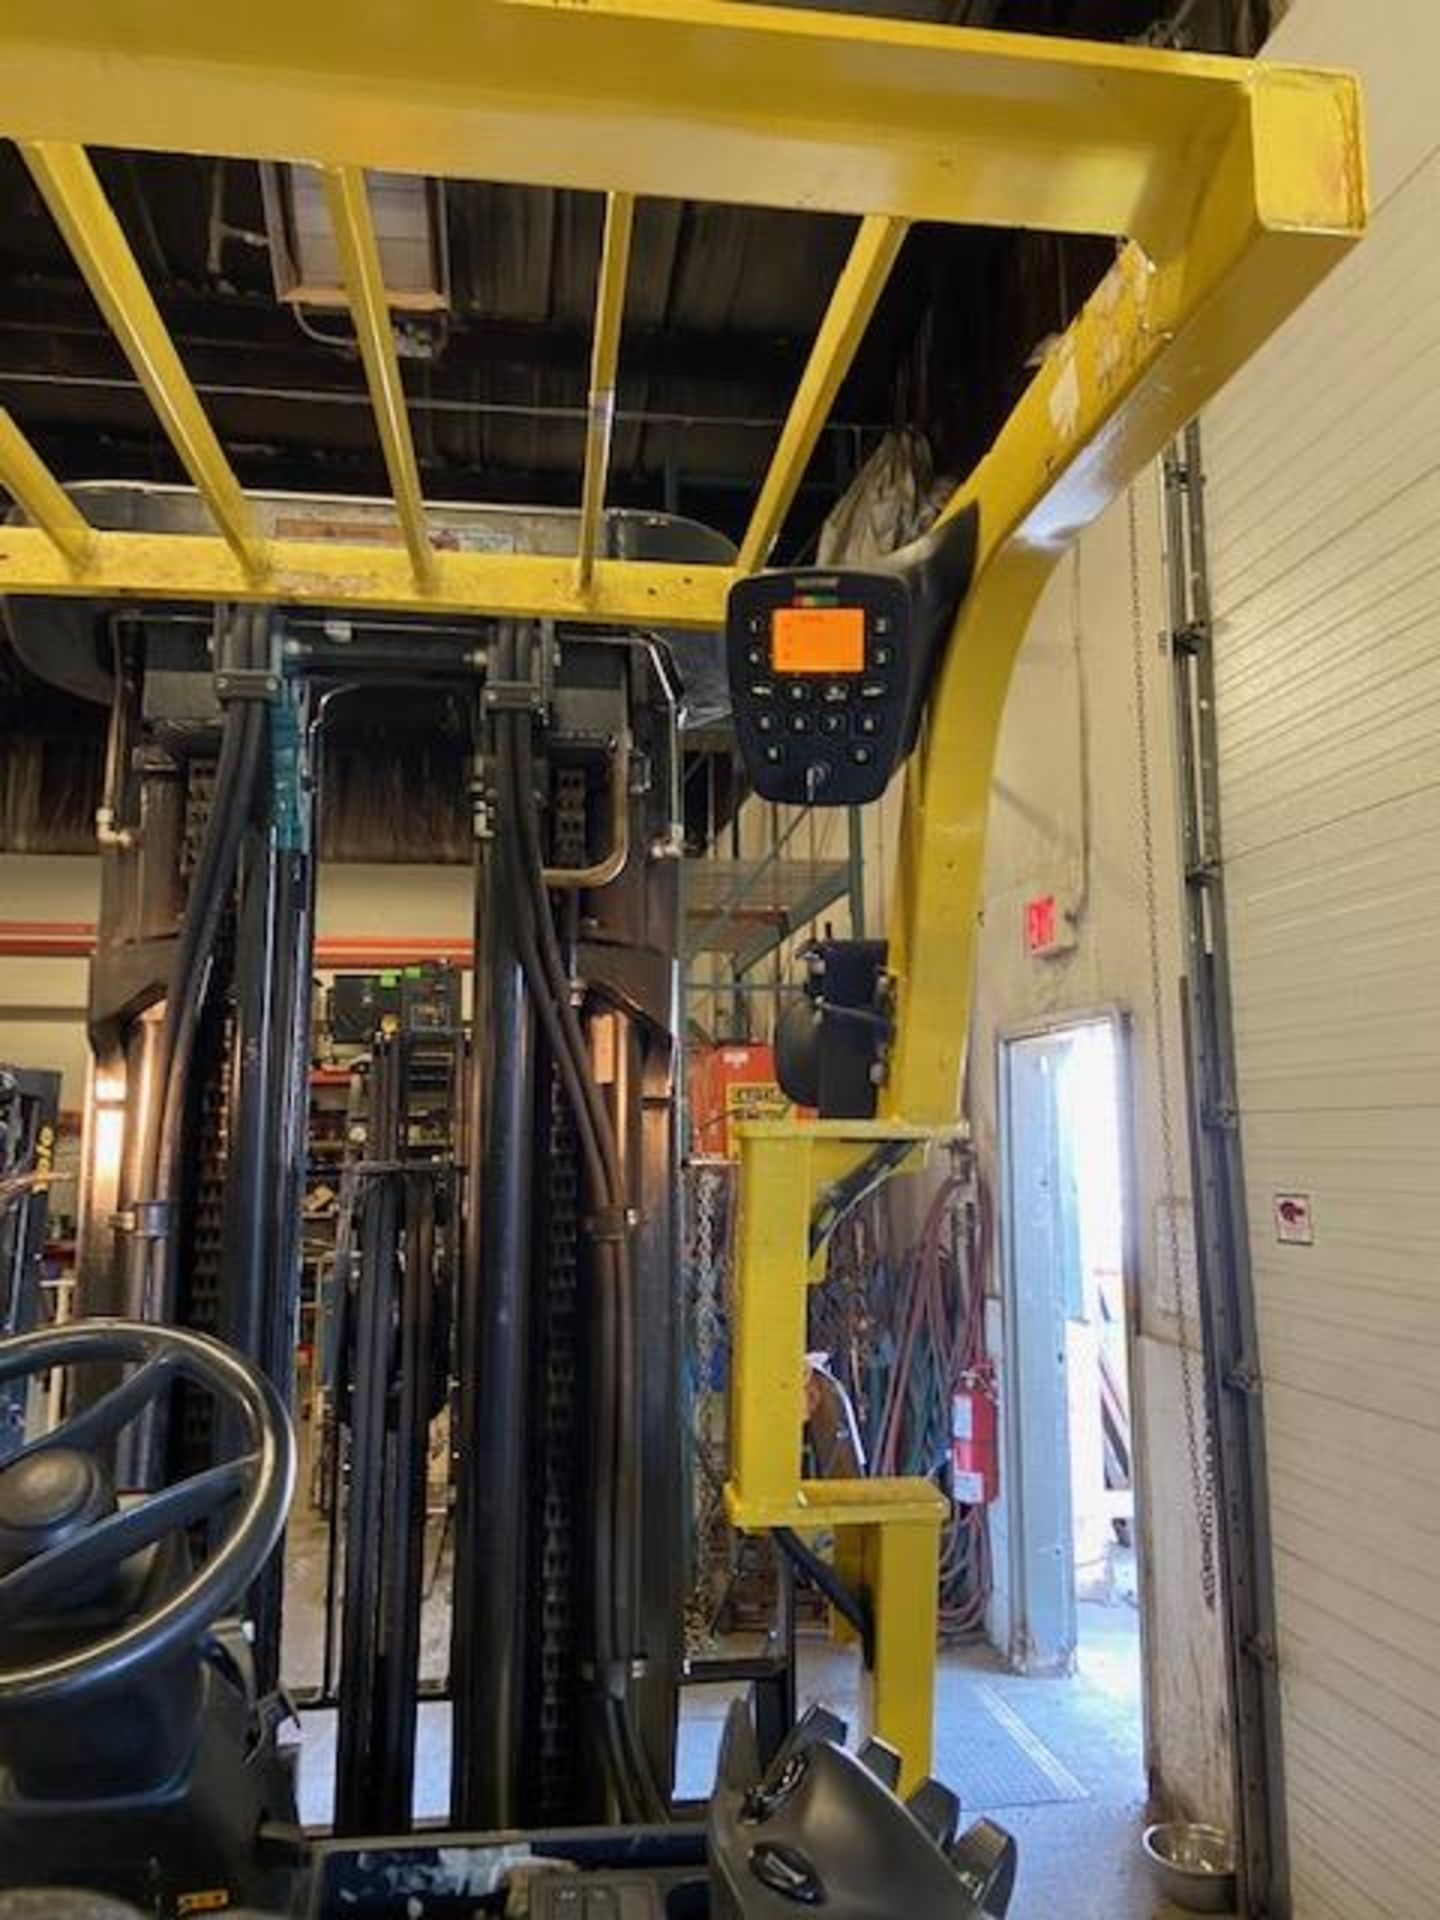 FREE CUSTOMS - 2013 Hyster 5000lbs Capacity Forklift Electric with 4-stage mast with sideshift and - Image 3 of 3